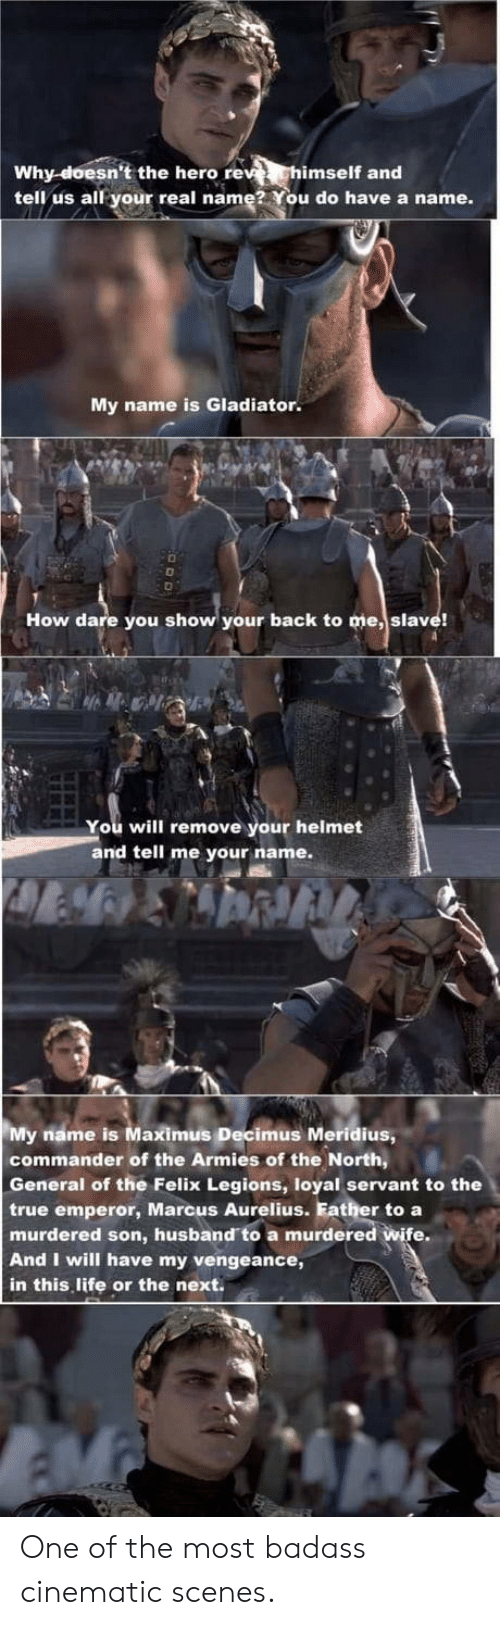 Maximus: Why-doesn't the hero re  tell us all your real name2 You do have a name.  imself and  My name is Gladiator.  How dare you show your back to me, slave!  You will remove your helmet  and tell me your name.  My name is Maximus Decimus Meridius  commander of the Armies of the North,  General of the Felix Legions, loyal servant to the  true emperor, Marcus Aurelius. Father to a  murdered son, husband to a murdered wife.  And I will have my vengeance,  in this life or the next. One of the most badass cinematic scenes.